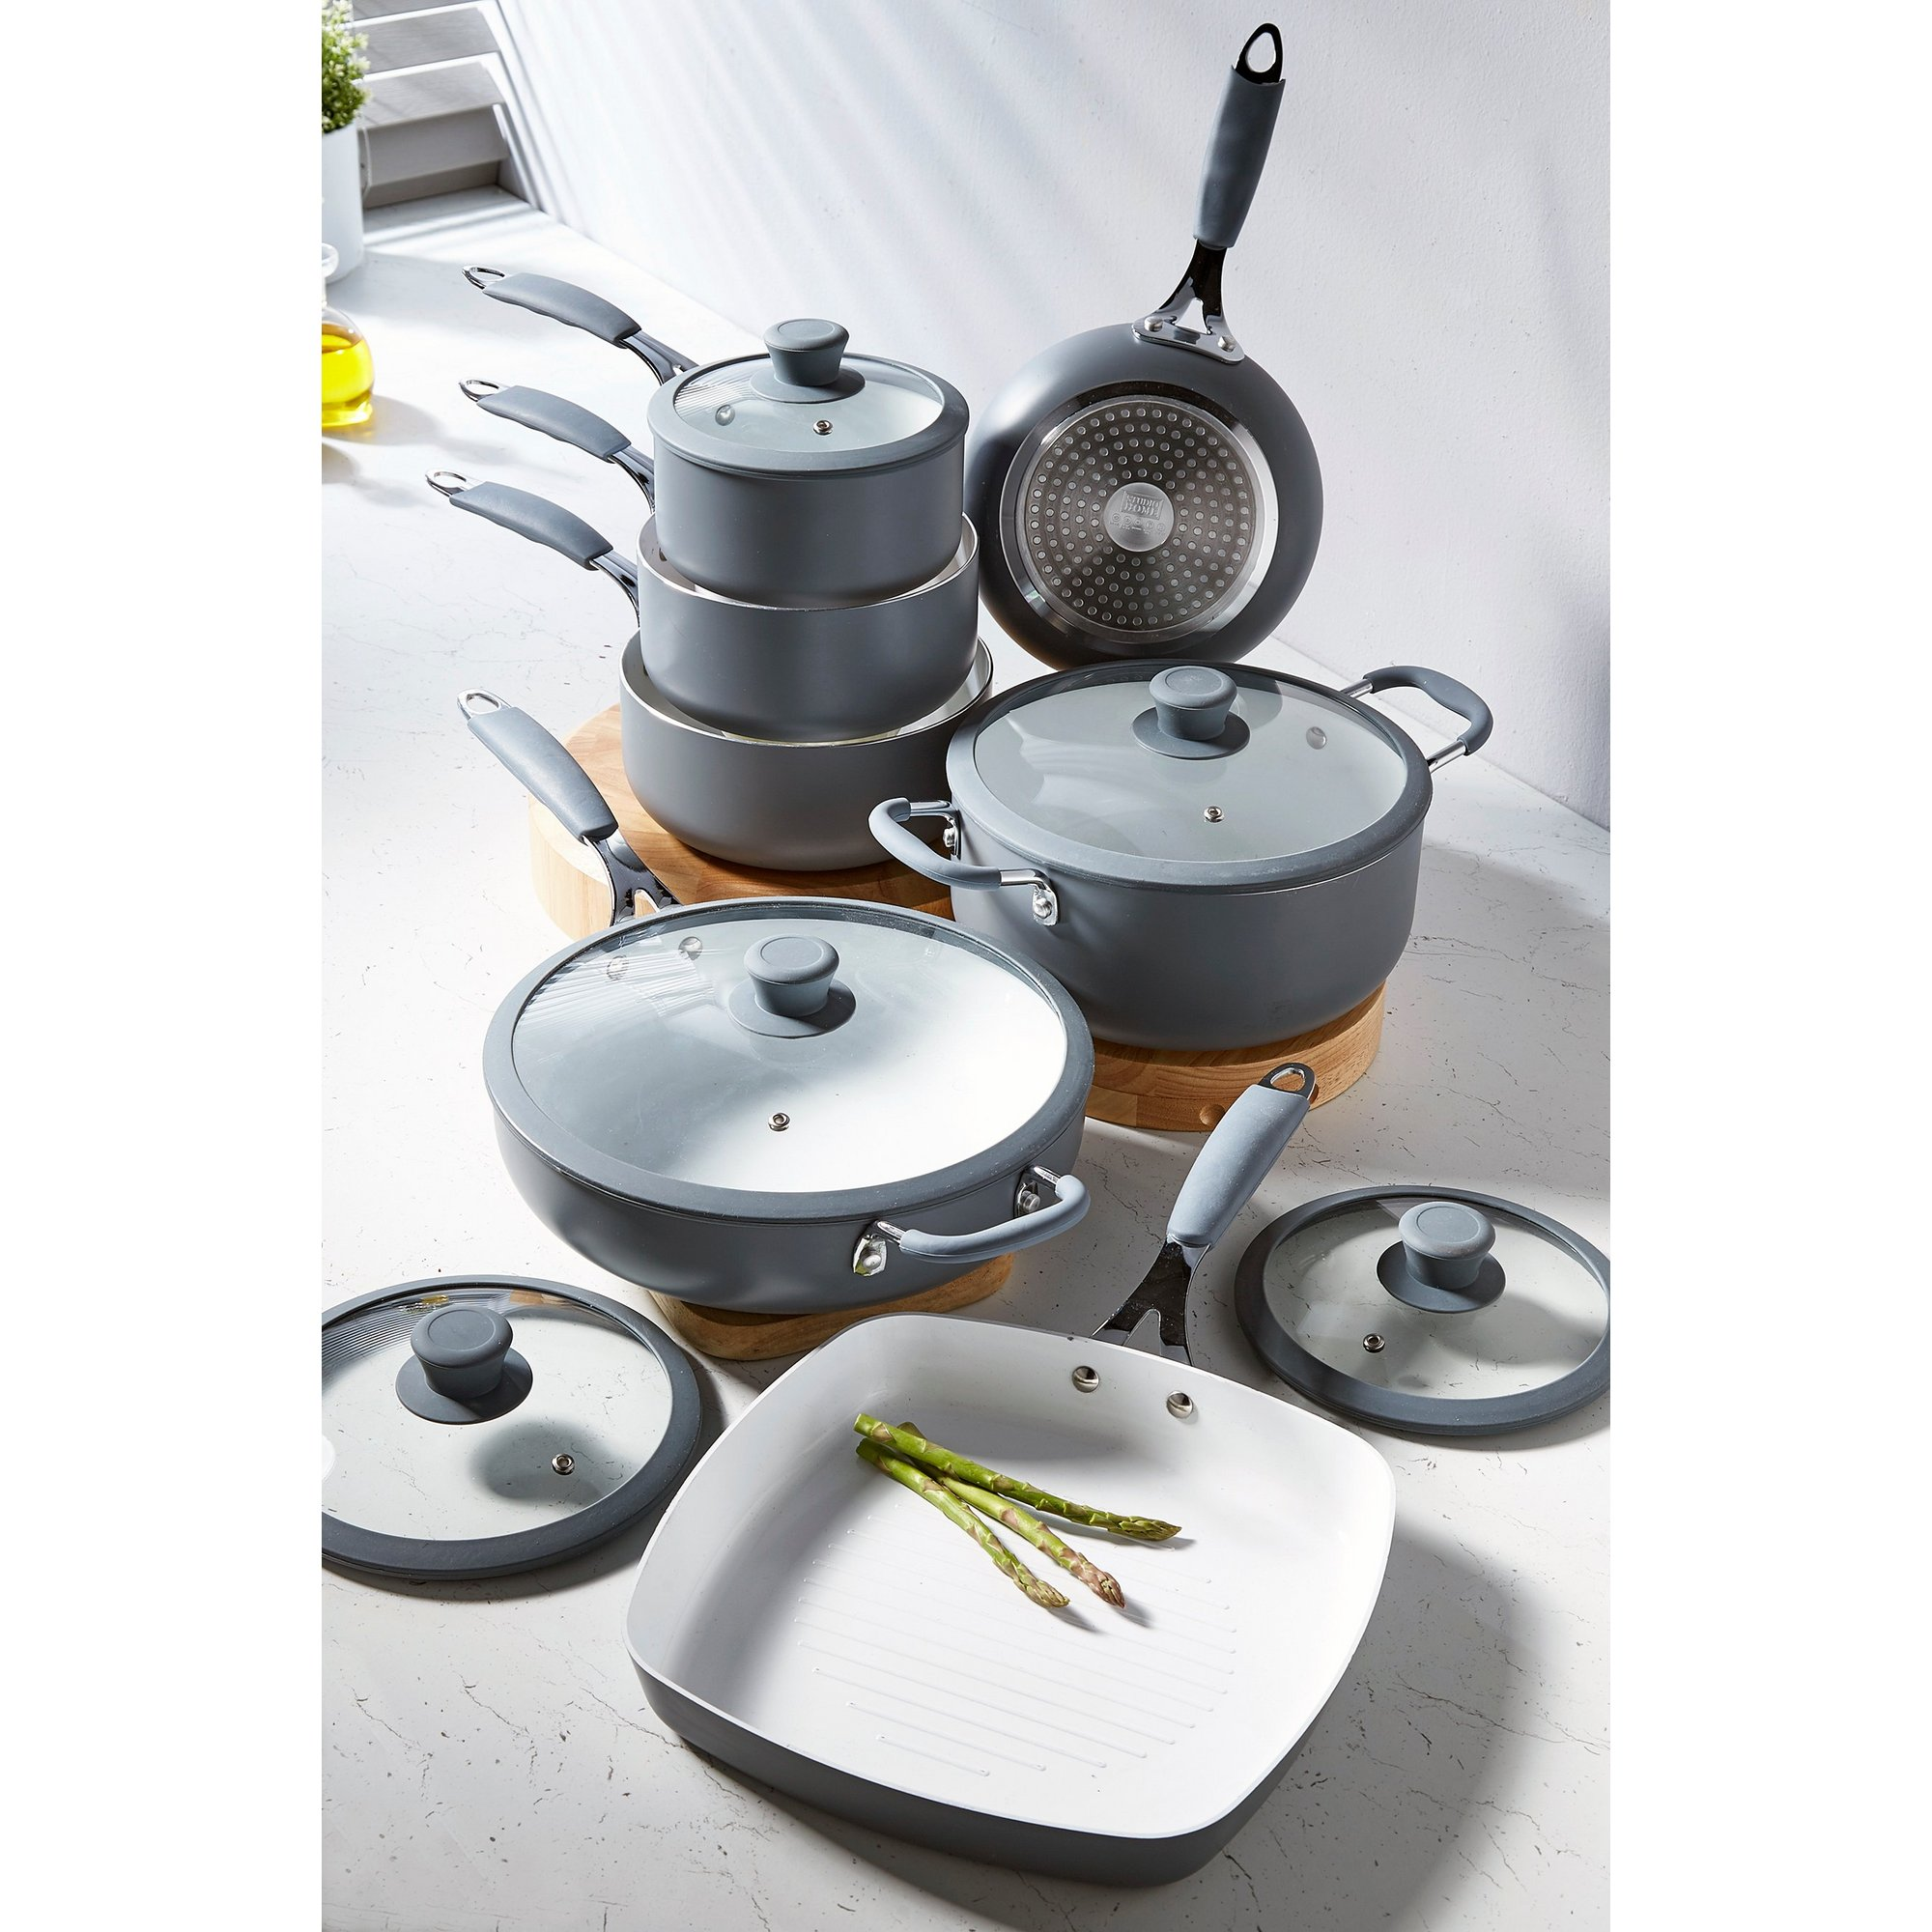 Image of 7-Piece Professional Cookware Set